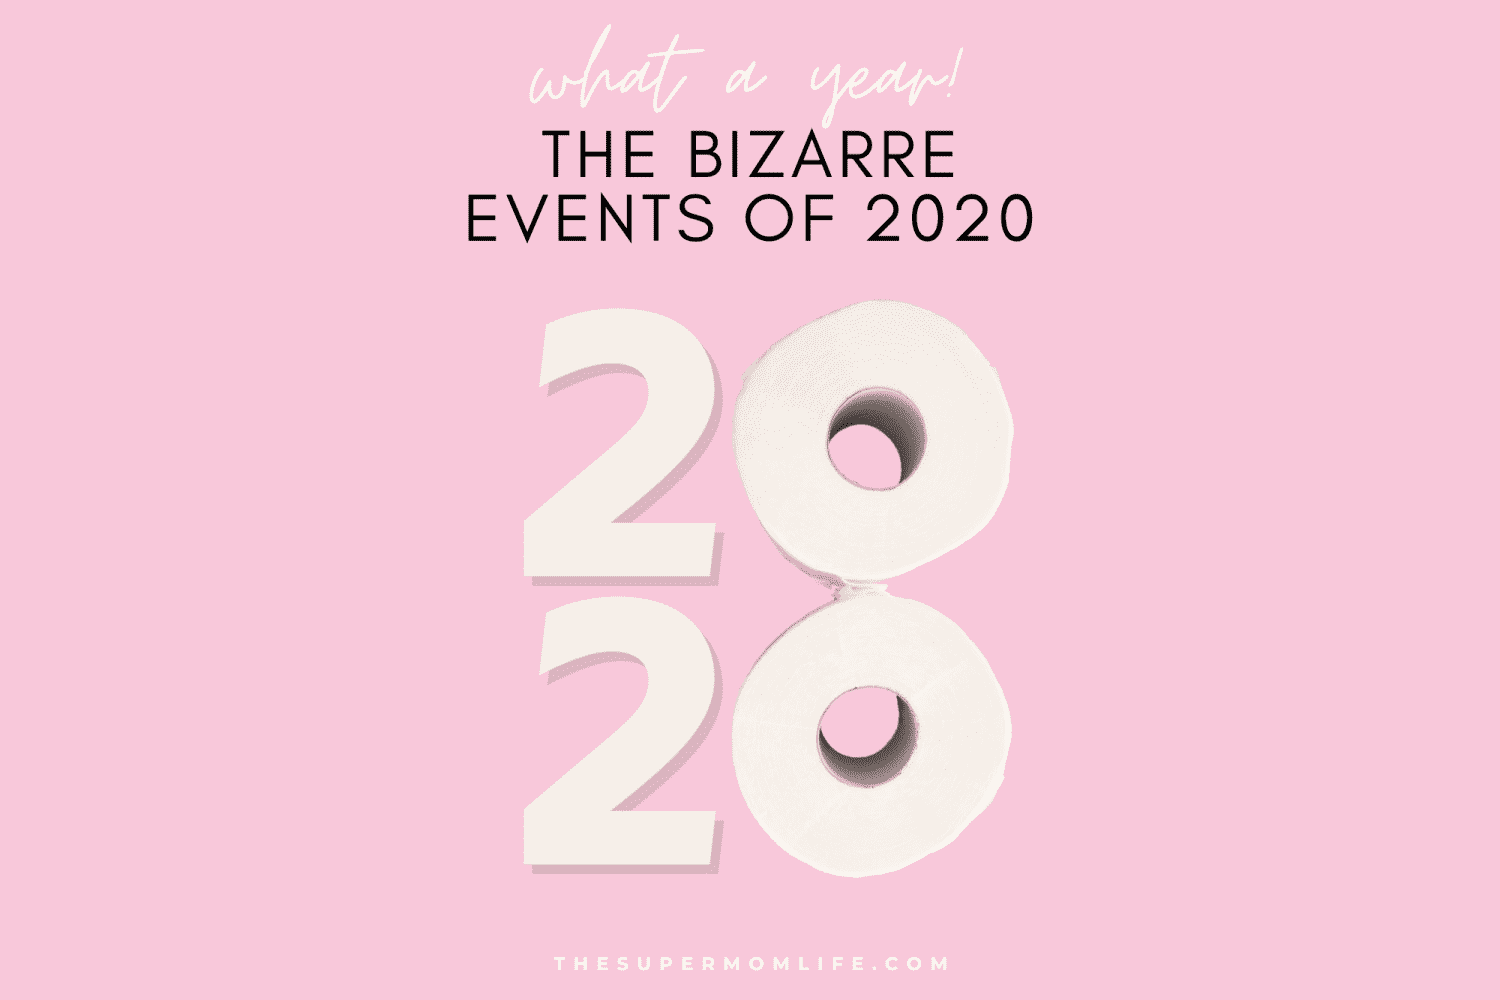 the bizarre events of 2020